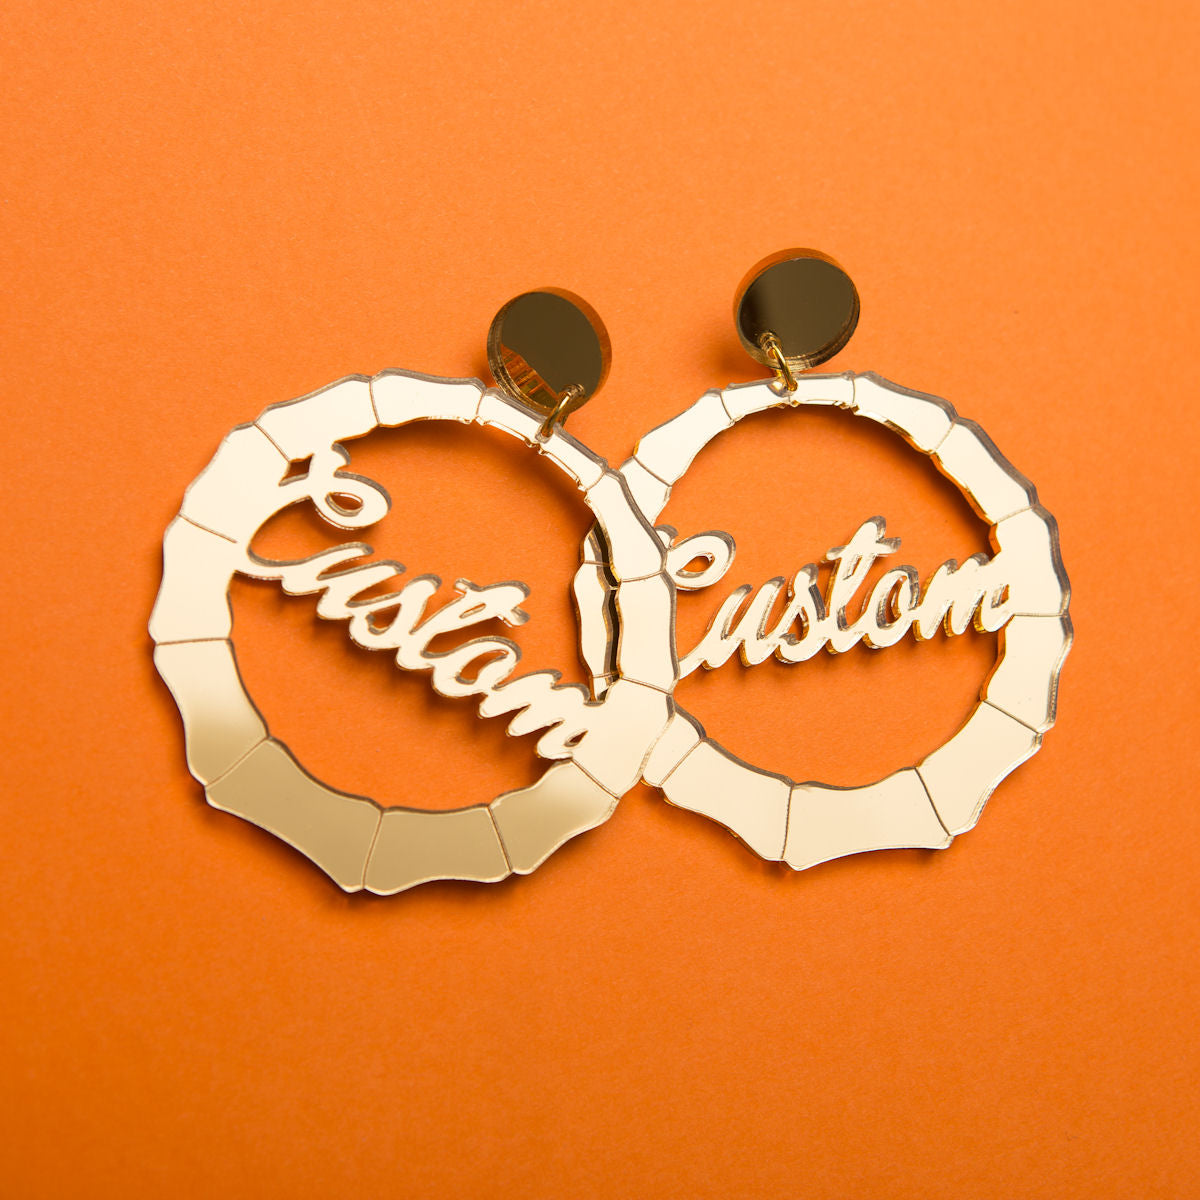 Sugar & Vice Bamboo earrings social media